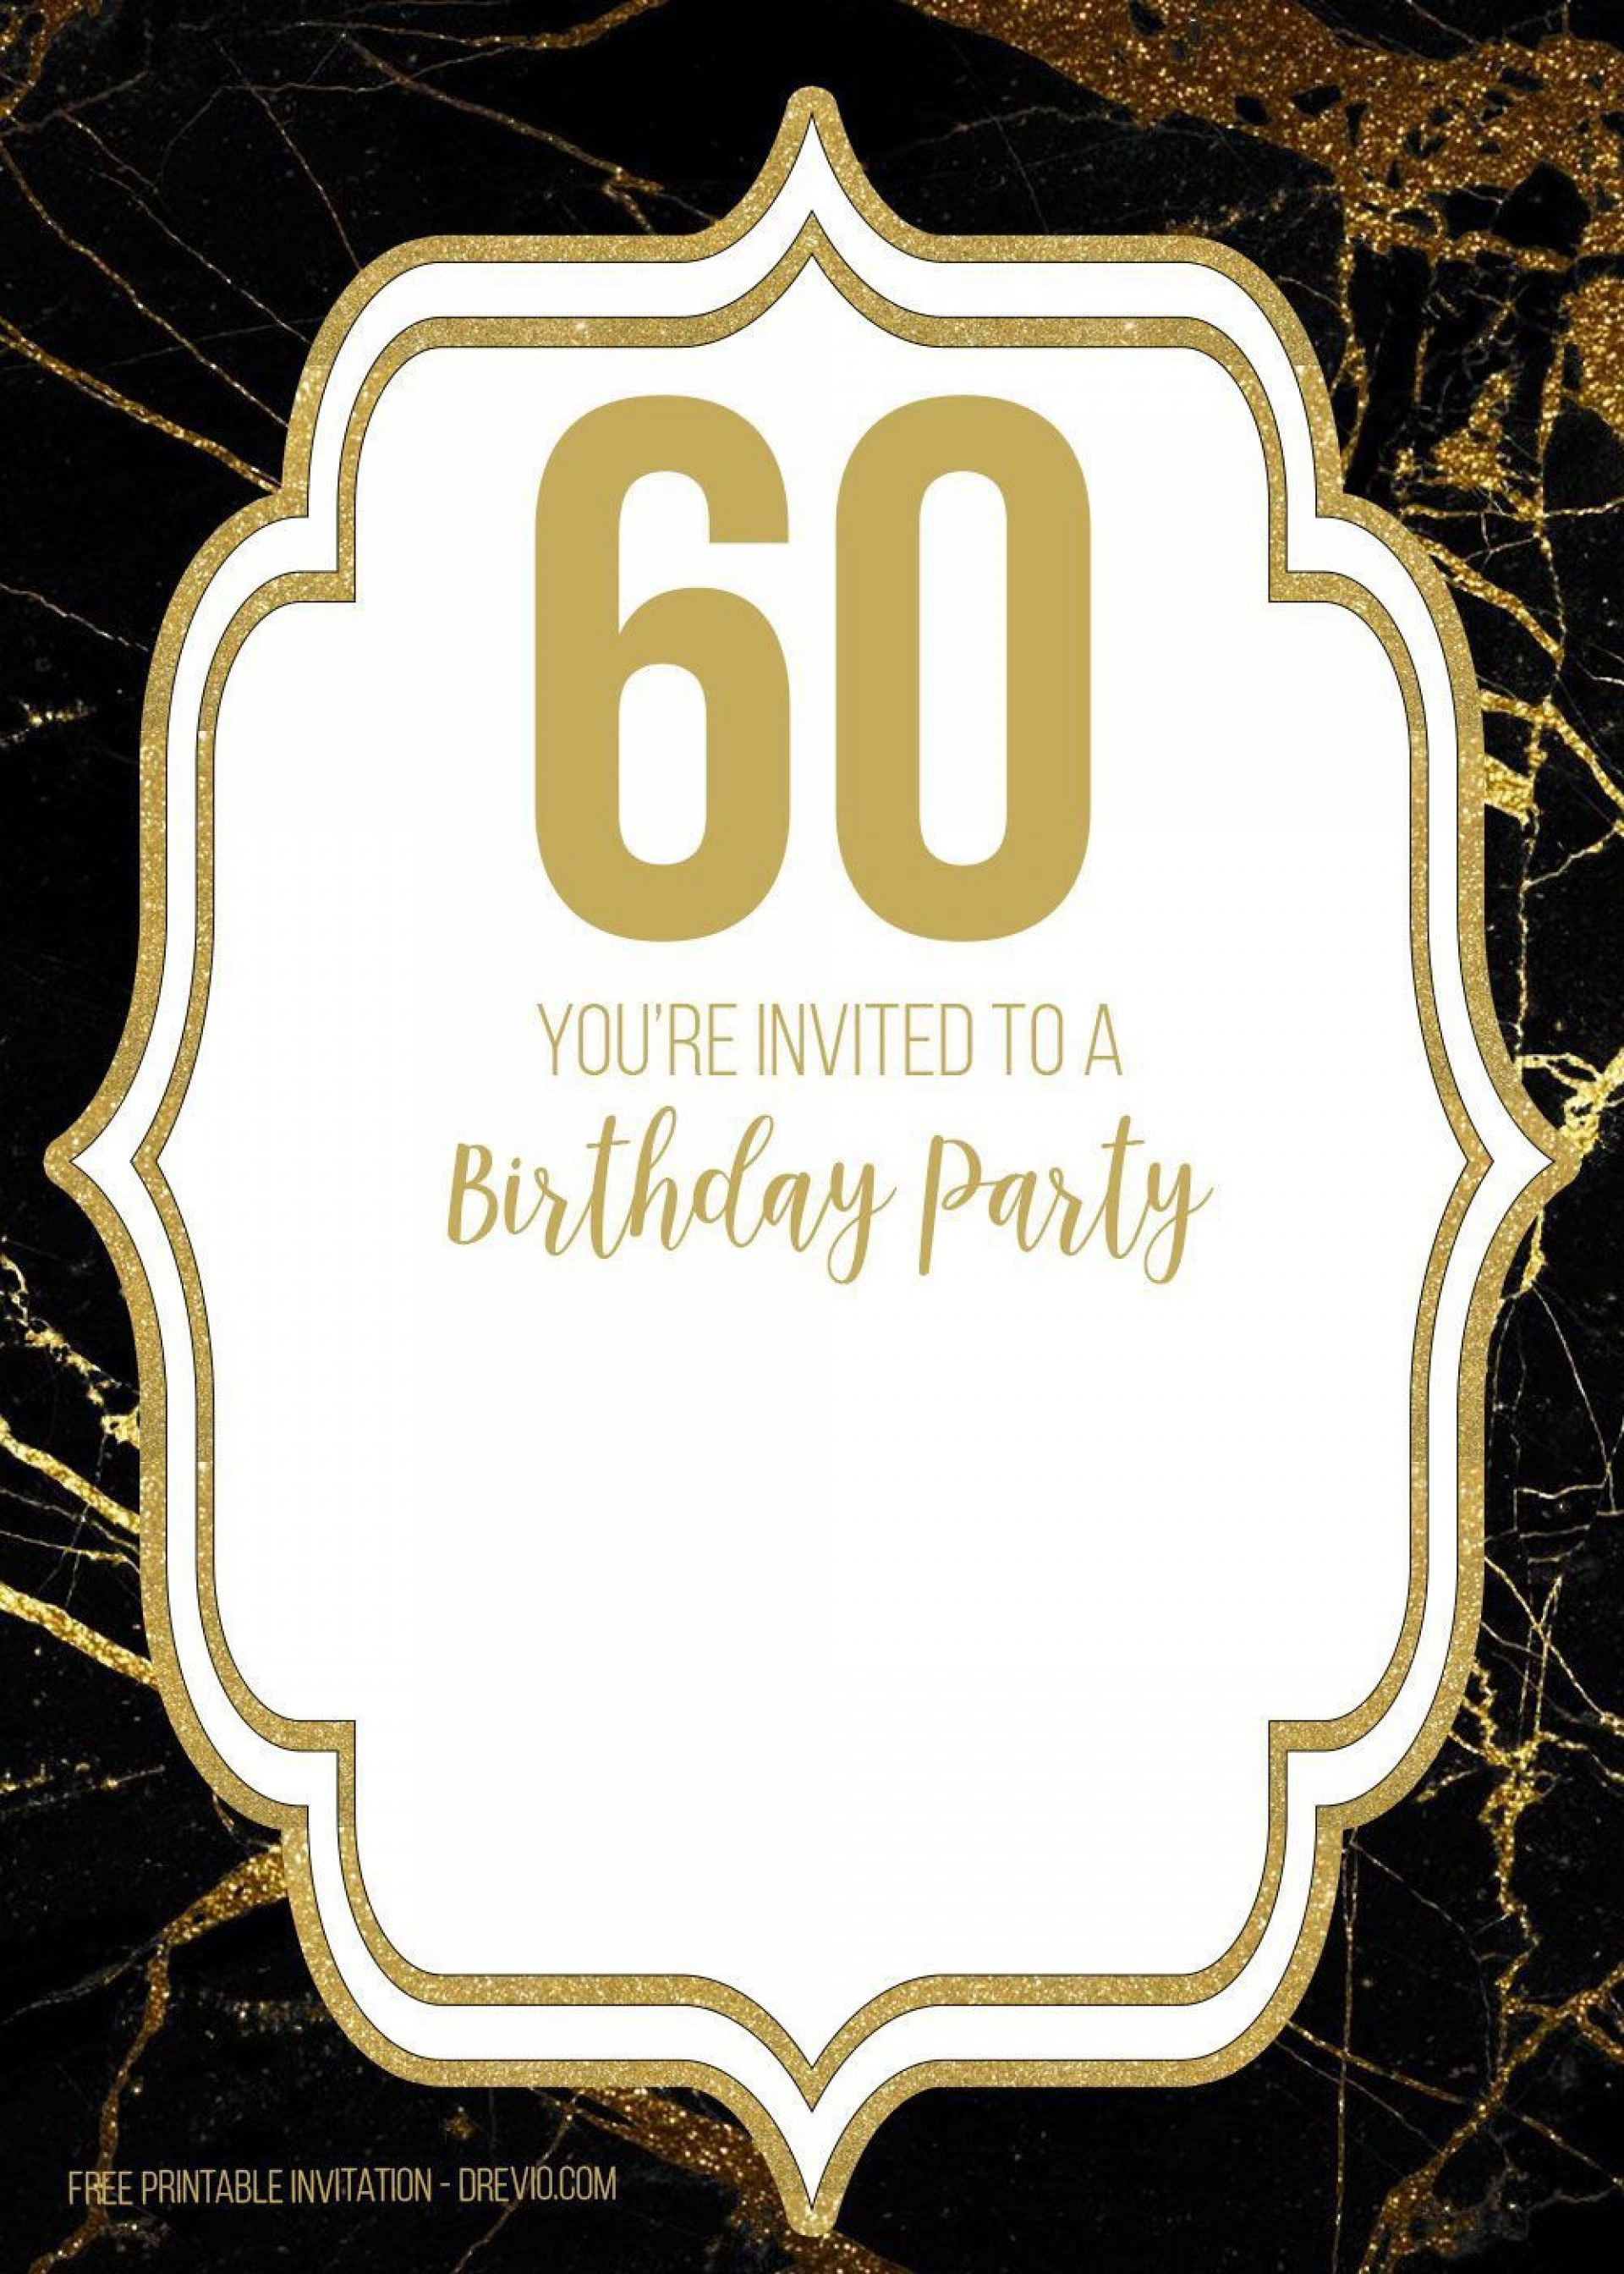 002 Surprising 60 Birthday Invite Template High Definition  Templates 60th Printable Free1920